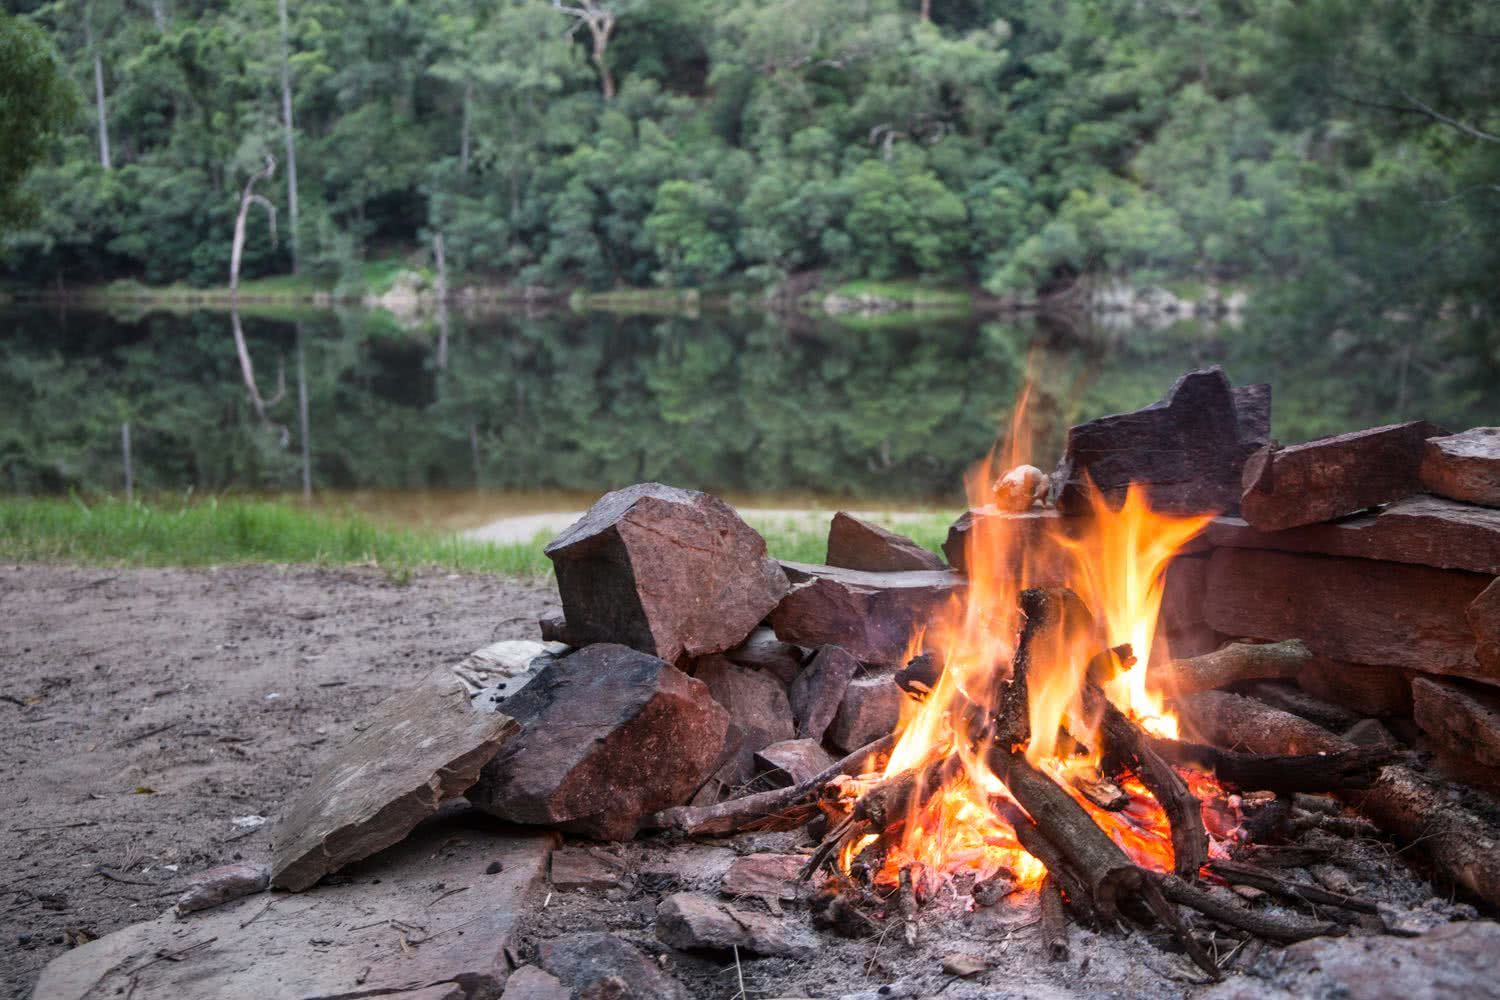 Rachel Dimond // Explorer Of The Month - March '18, Campfire - Kangaroo Valley, flames, river, glassy water, no wind, mirror, lake, reflection